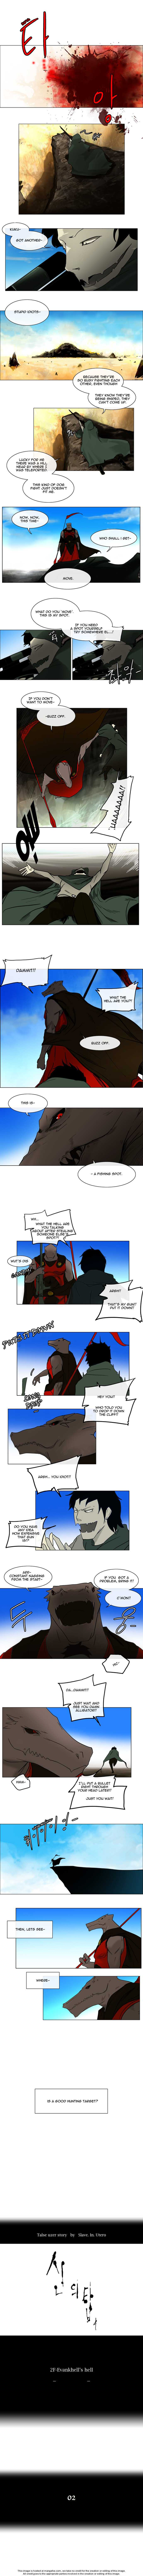 Tower of God 6 Page 2